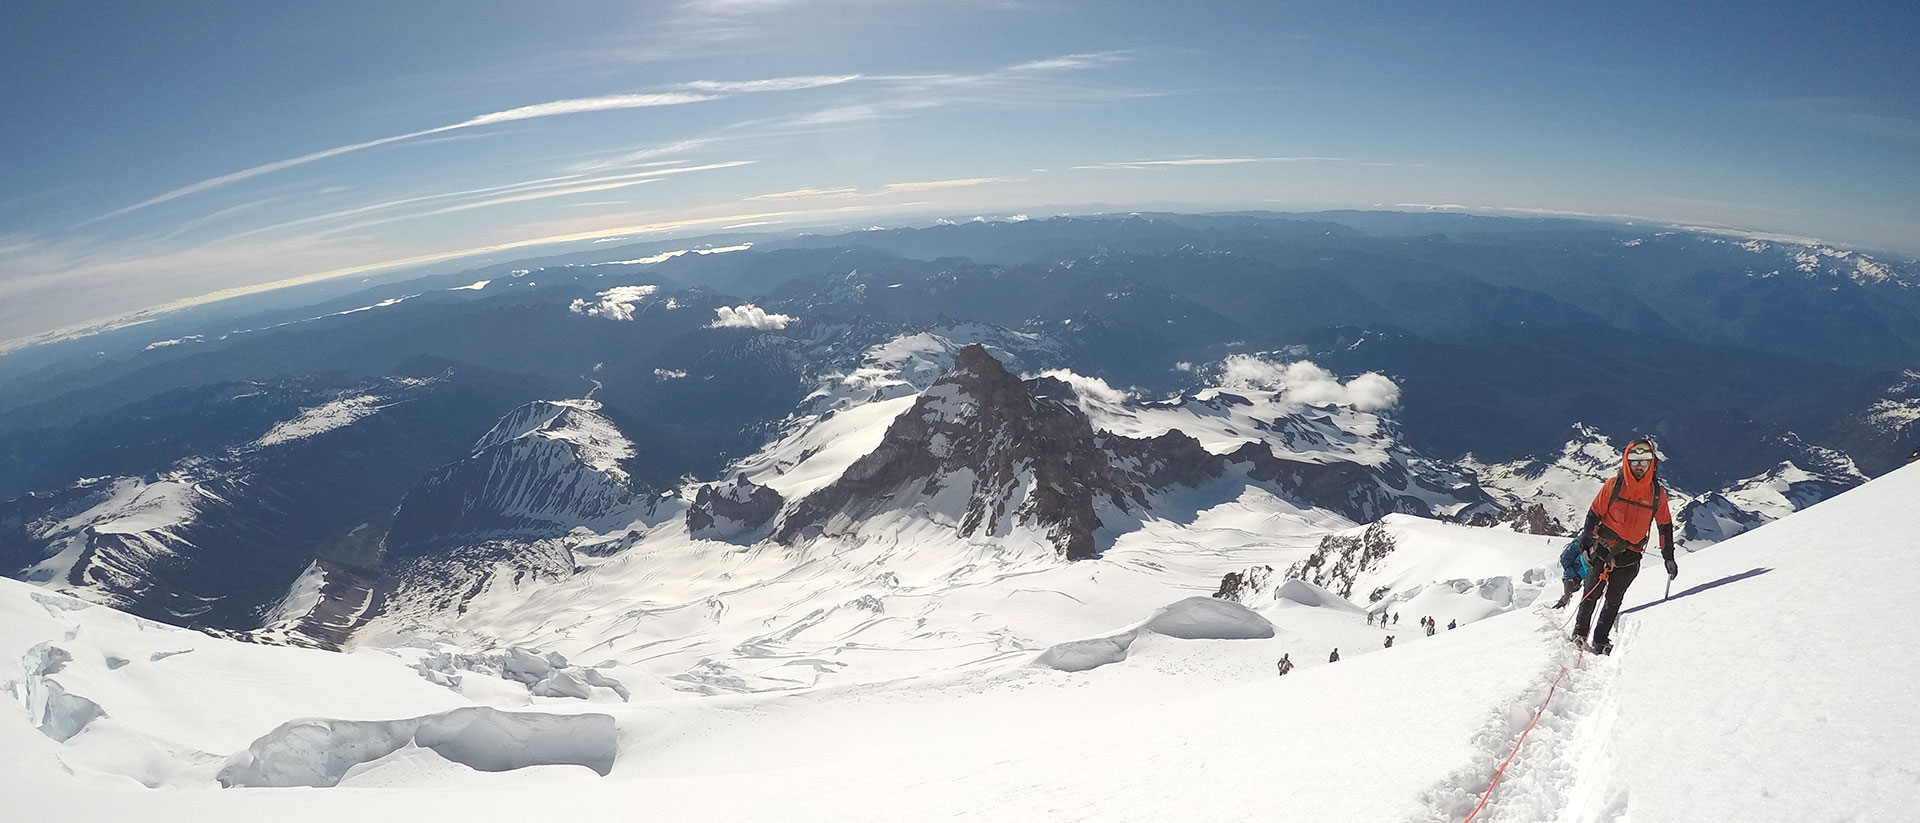 Seeing a curved horizon from high up Mt Rainer